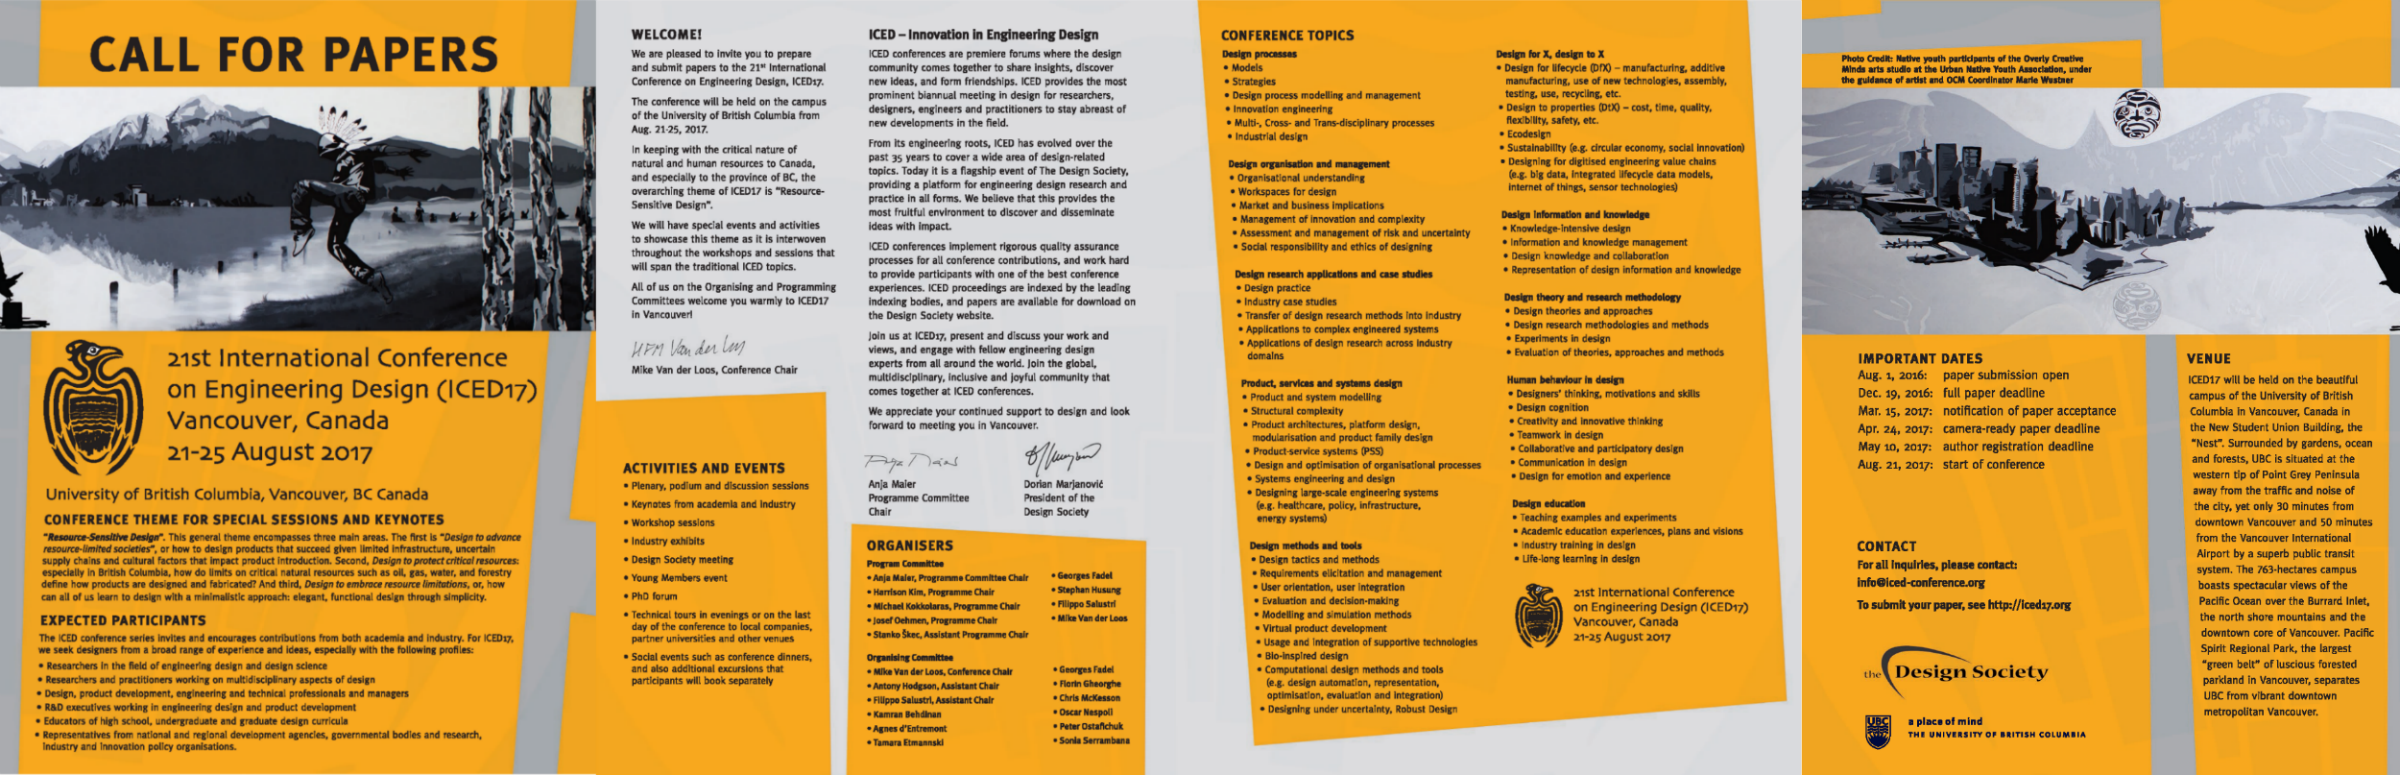 Iced17 21st International Conference On Engineering Design Event Dtu Research Database